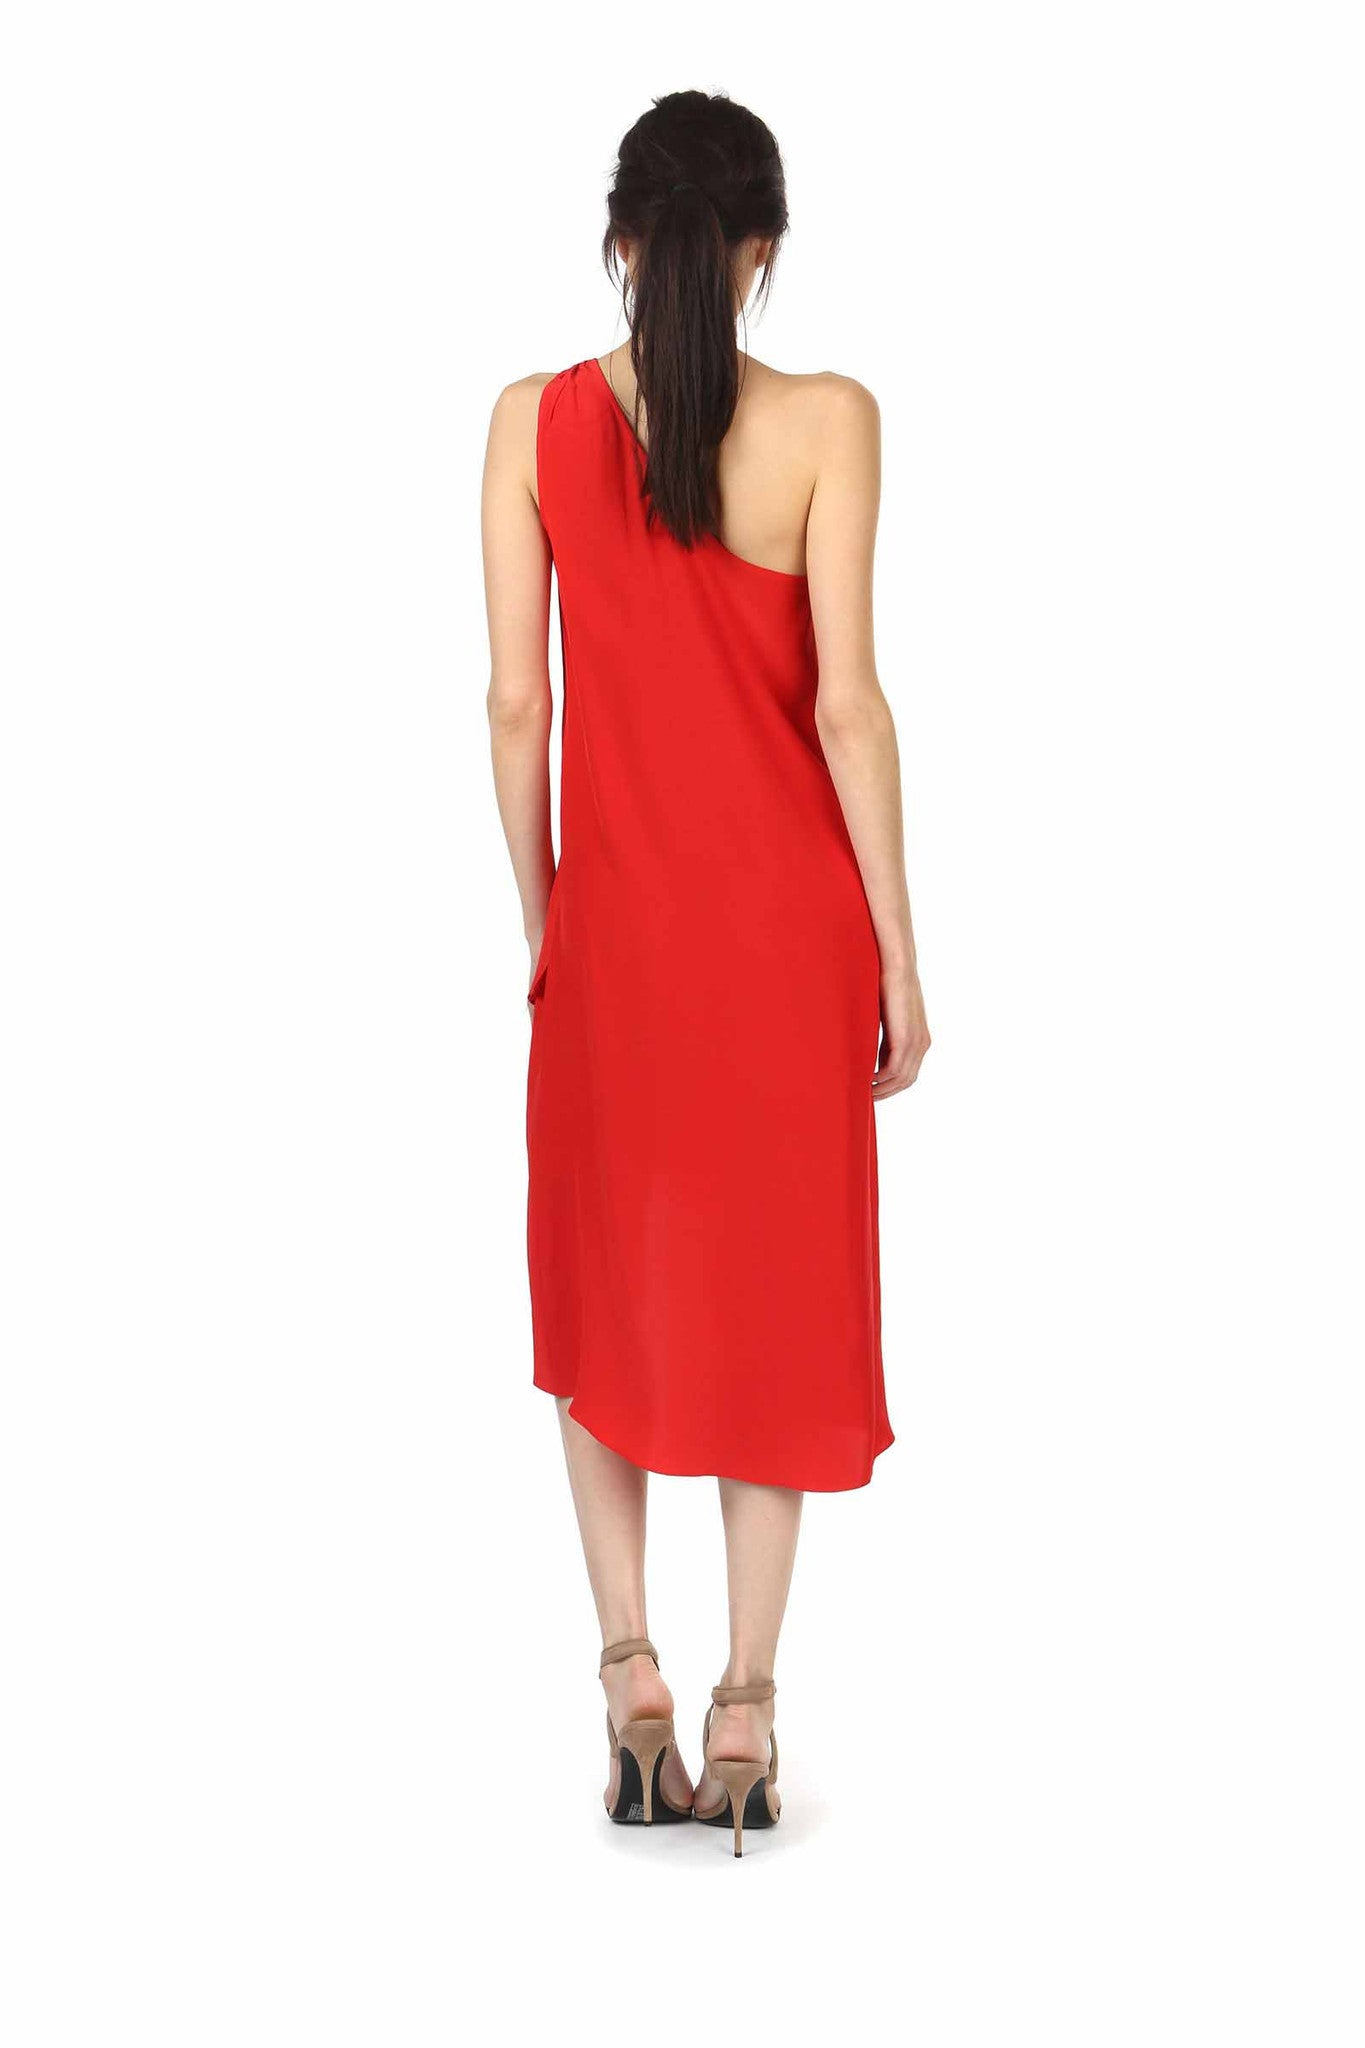 Jay Godfrey Red One-Shoulder Dress - Back View